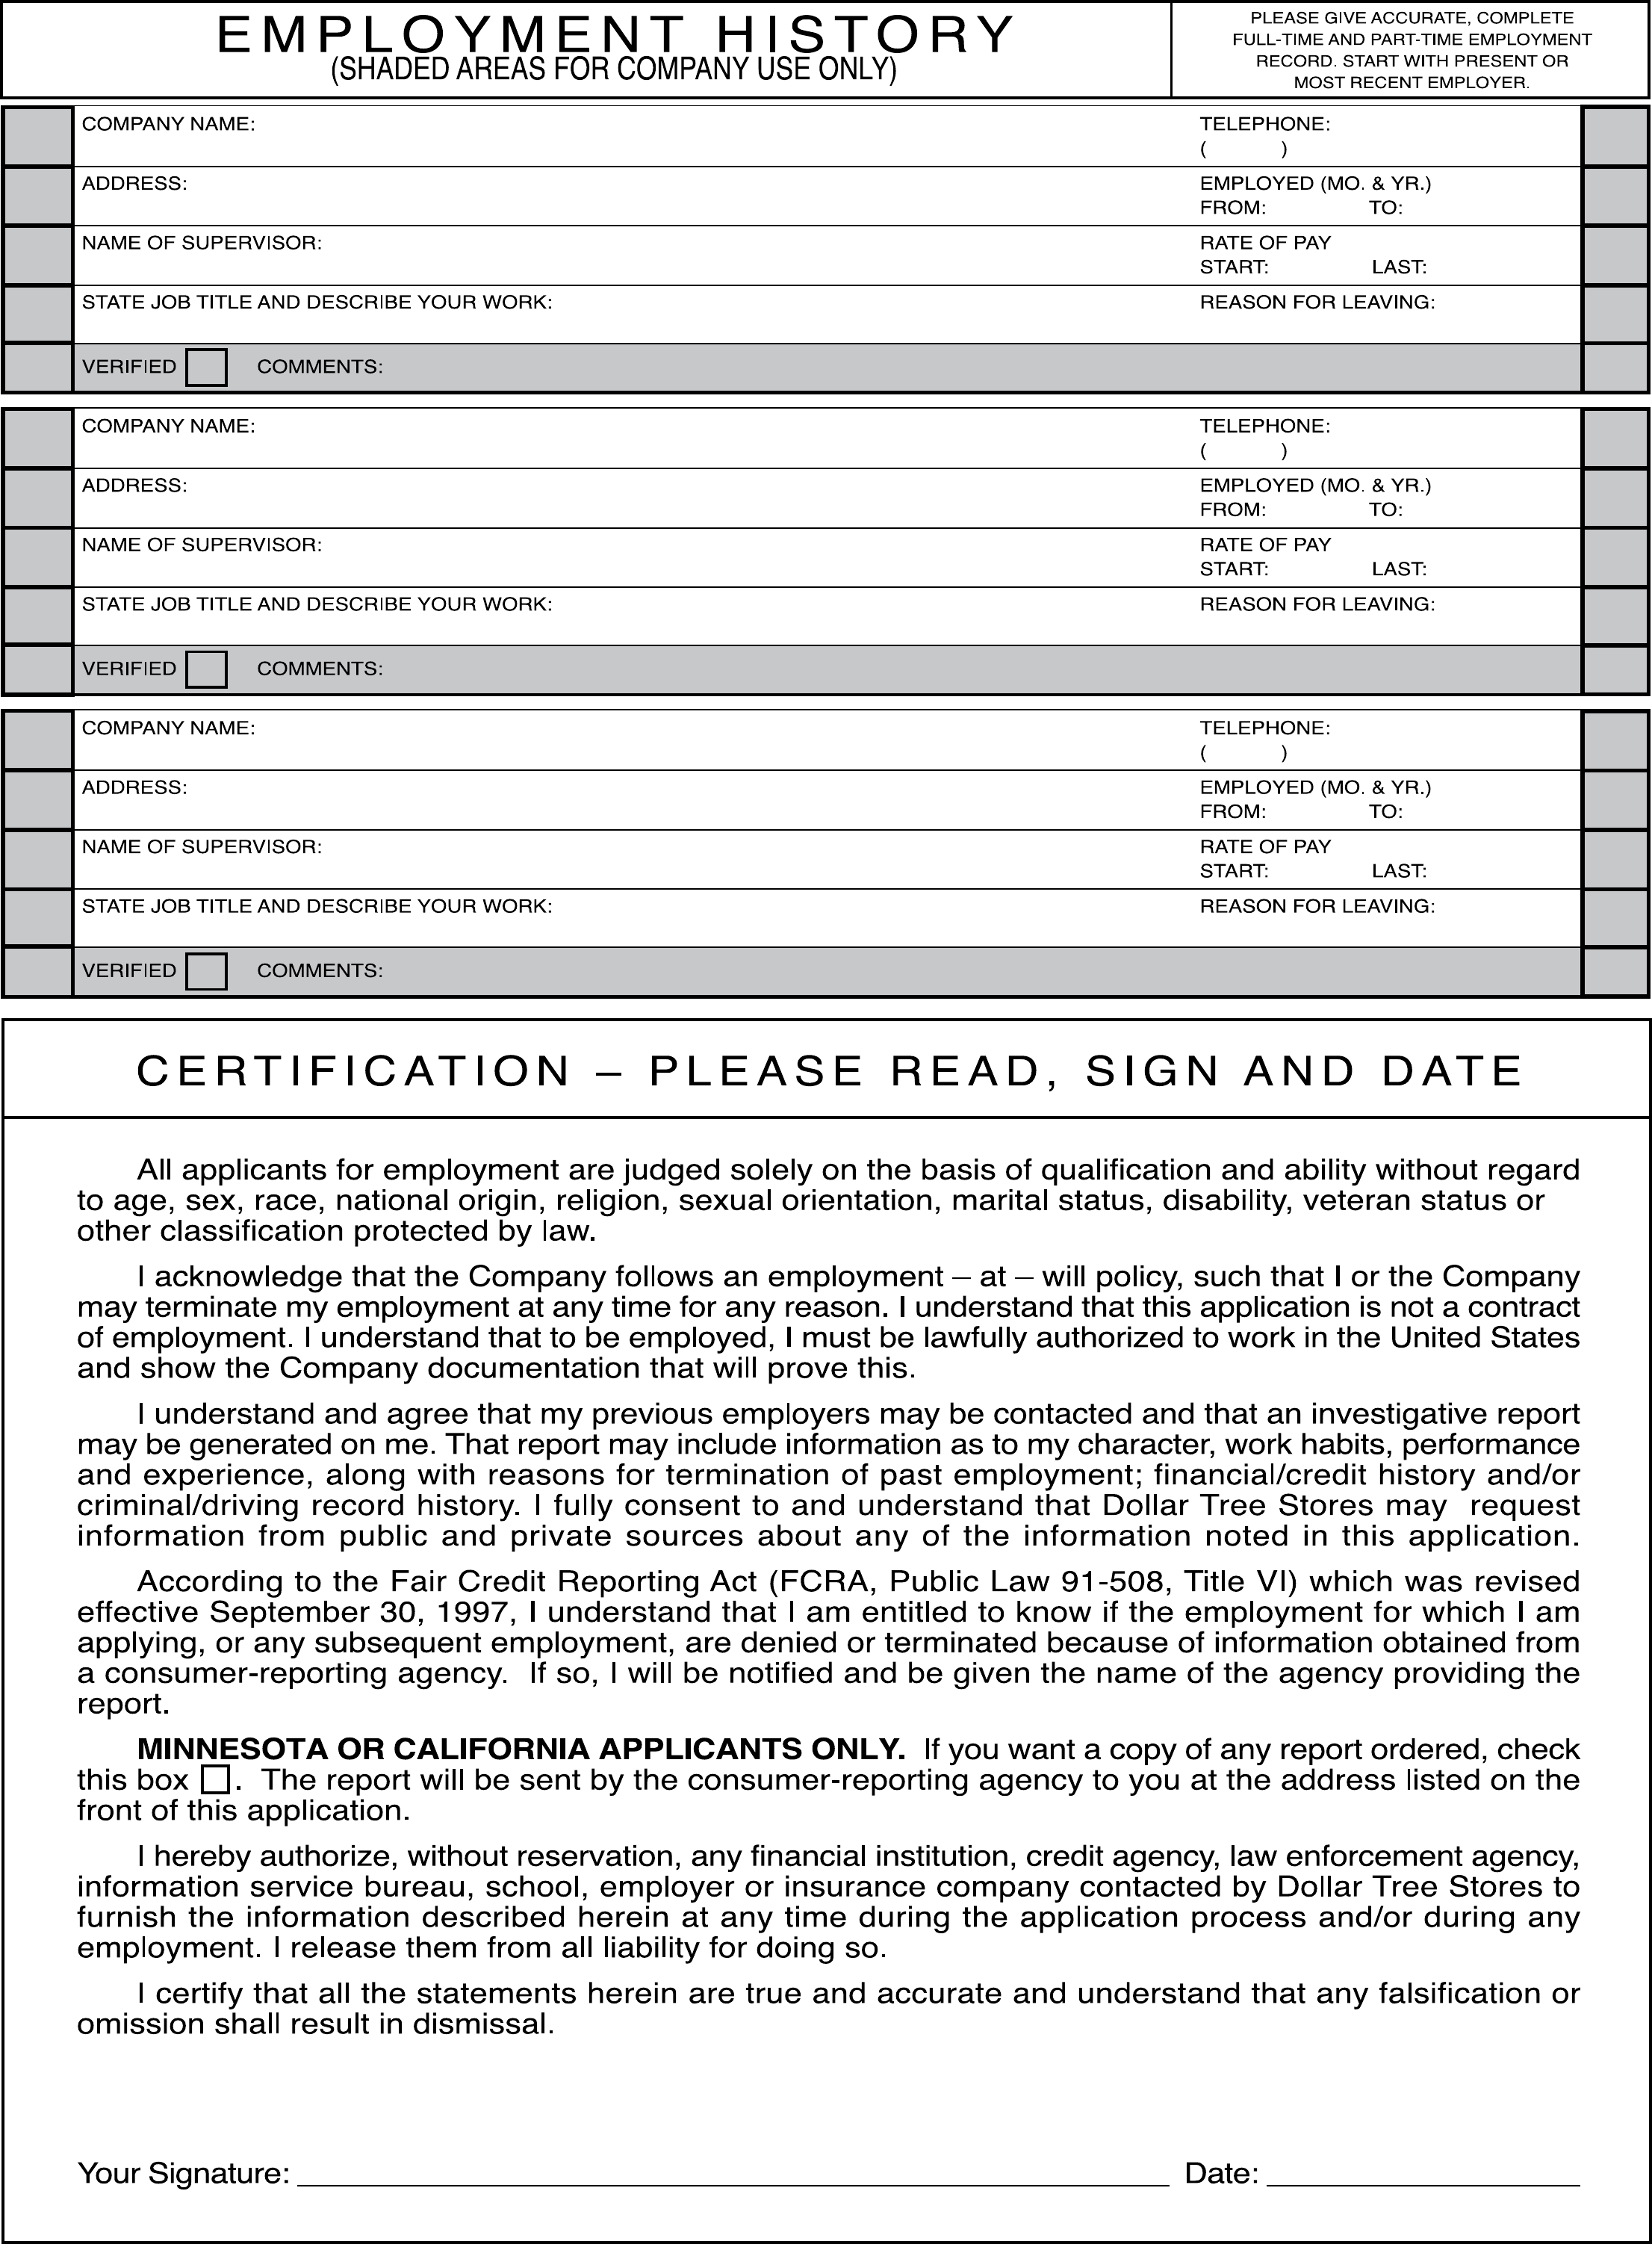 Download free and printable Dollar Tree job application form in PDF or WORD and apply for Dollar Tree jobs online and offline. Job Application Interview; Home. Job Application Form. Dollar Tree Job Application Form. Free Printable Dollar Tree Application Form. Next. Page 1 / 2. Fill Online. Free Download. Write a Comment. Write a Comment /5(42).